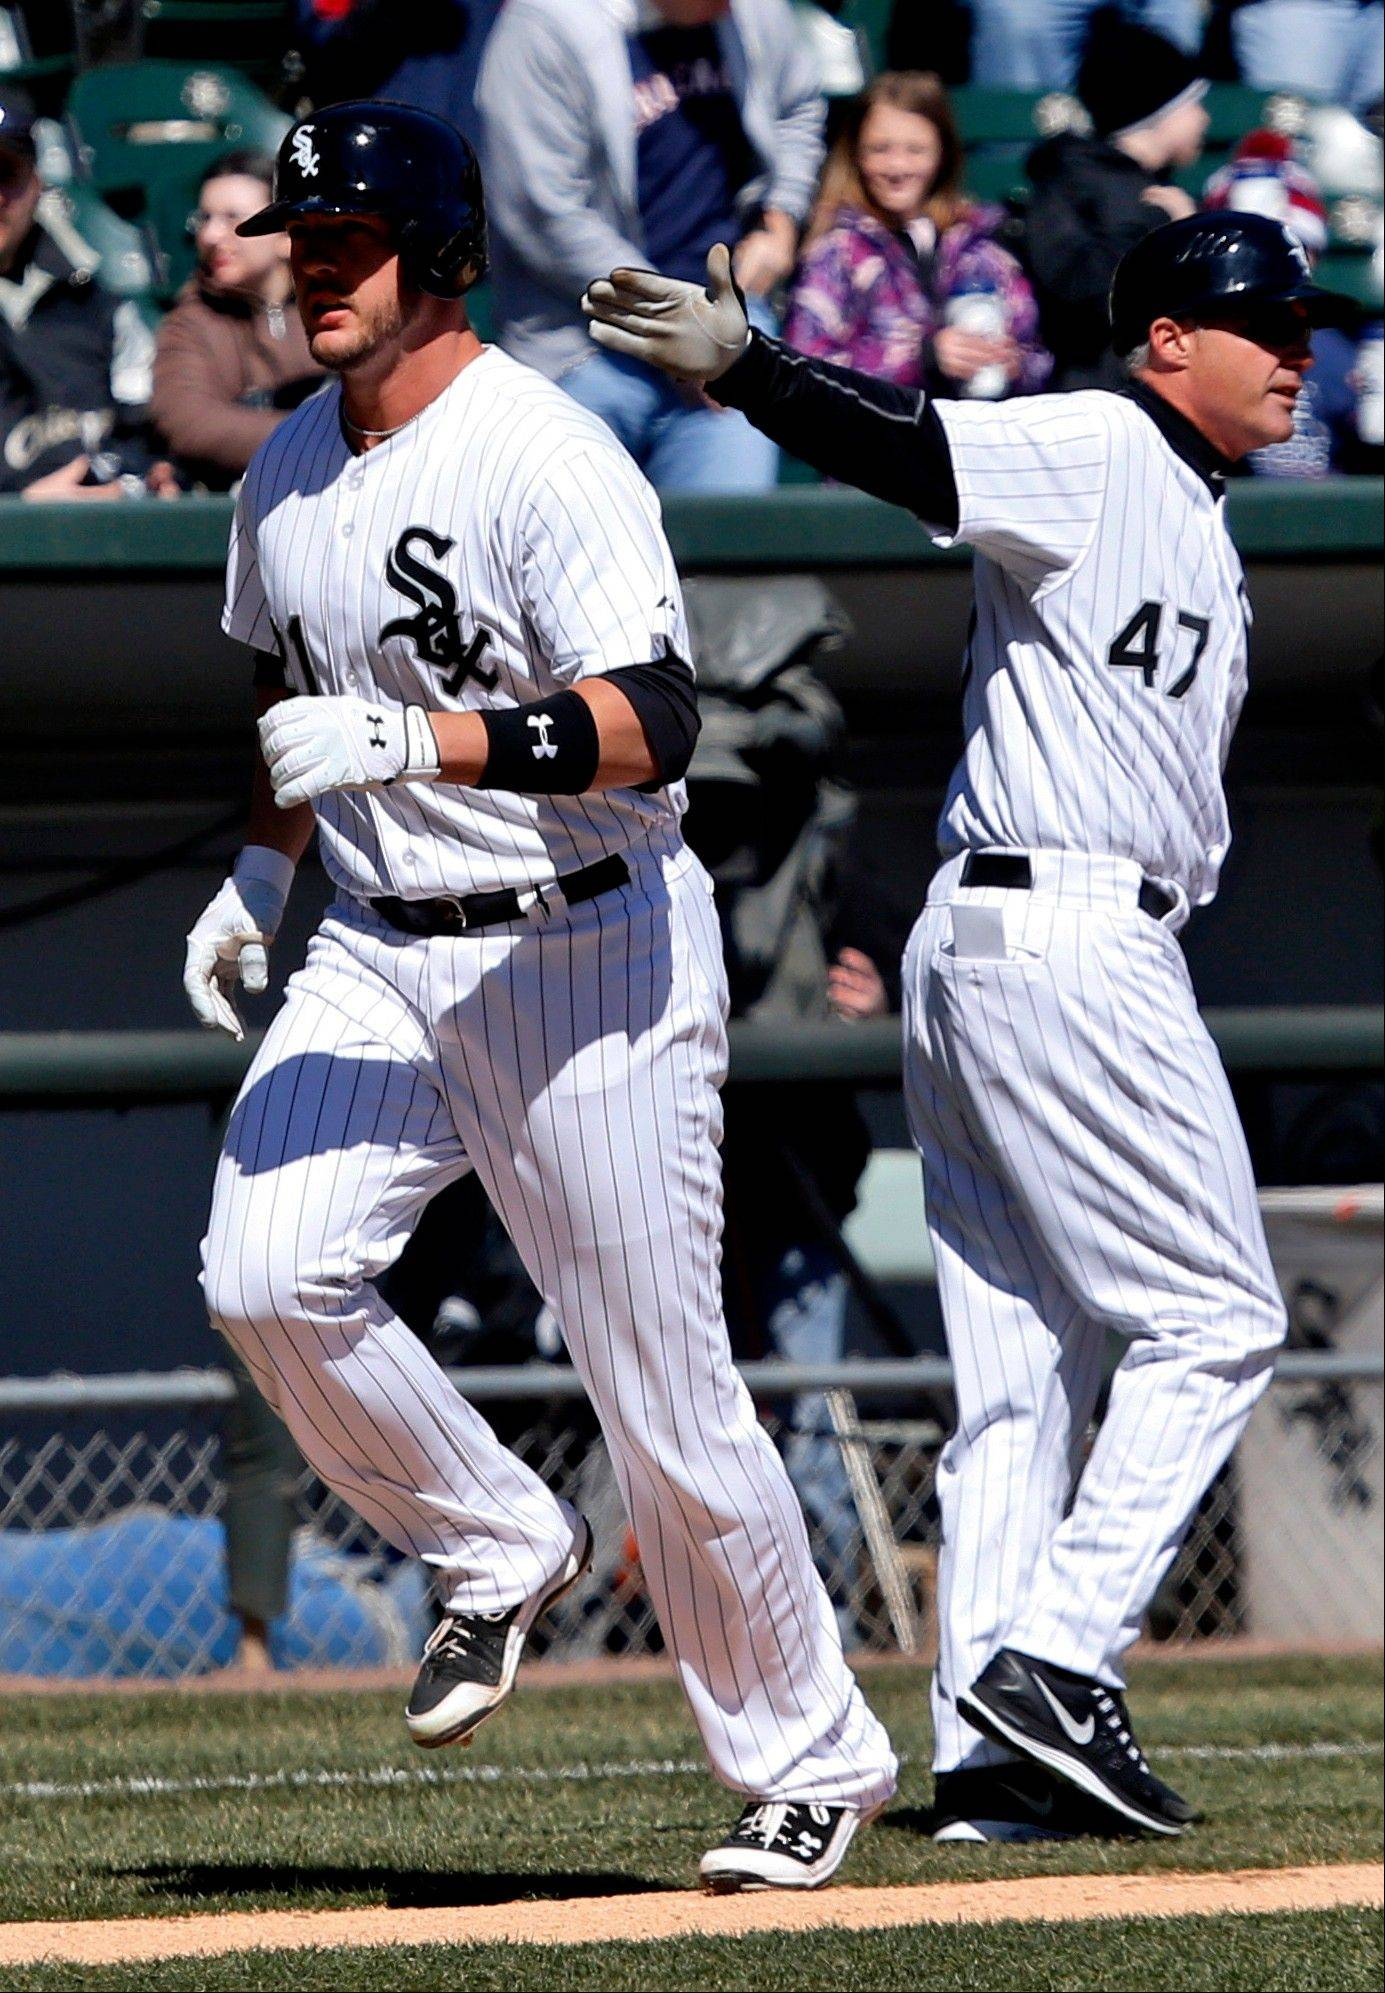 Chicago White Sox third base coach Joe McEwing, right, send Tyler Flowers home after Flower's home run off Kansas City Royals starting pitcher Ervin Santana during the third inning of a baseball game Wednesday, April 3, 2013, in Chicago.